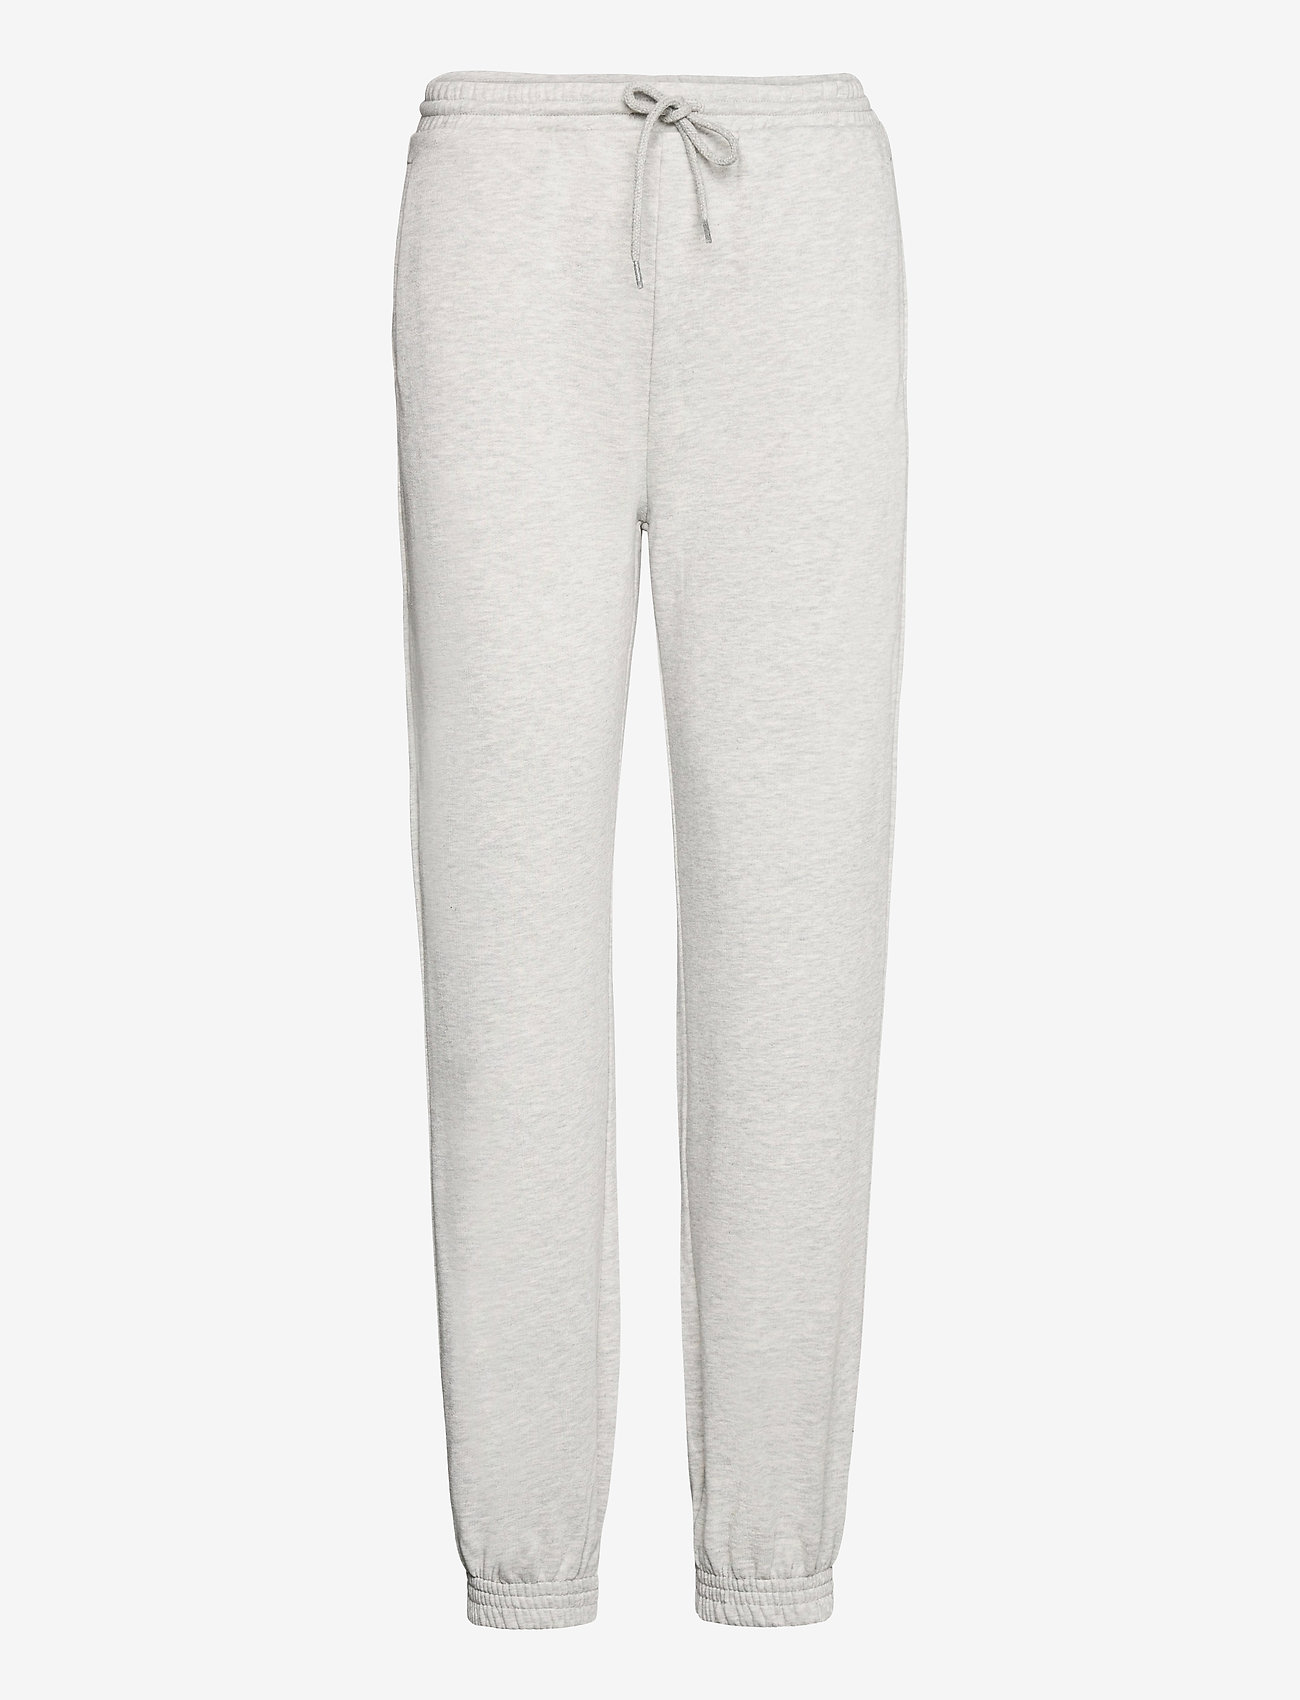 Modström - Holly pants - sweatpants - grey melange - 0